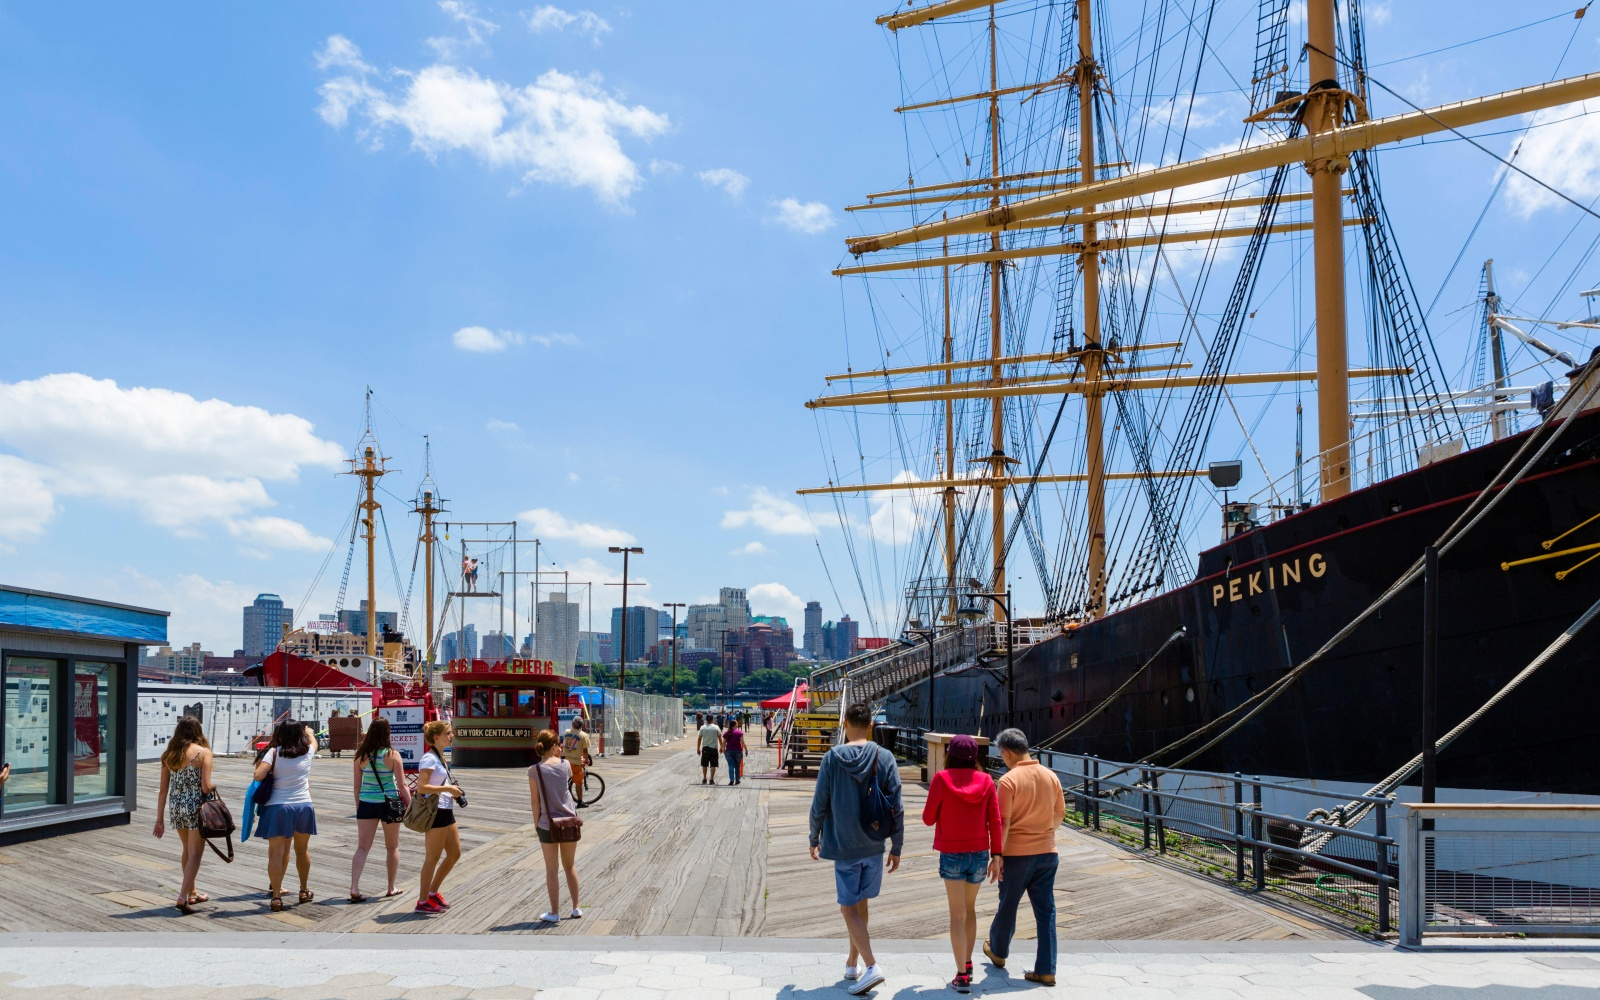 South Street Seaport, New York City, New York